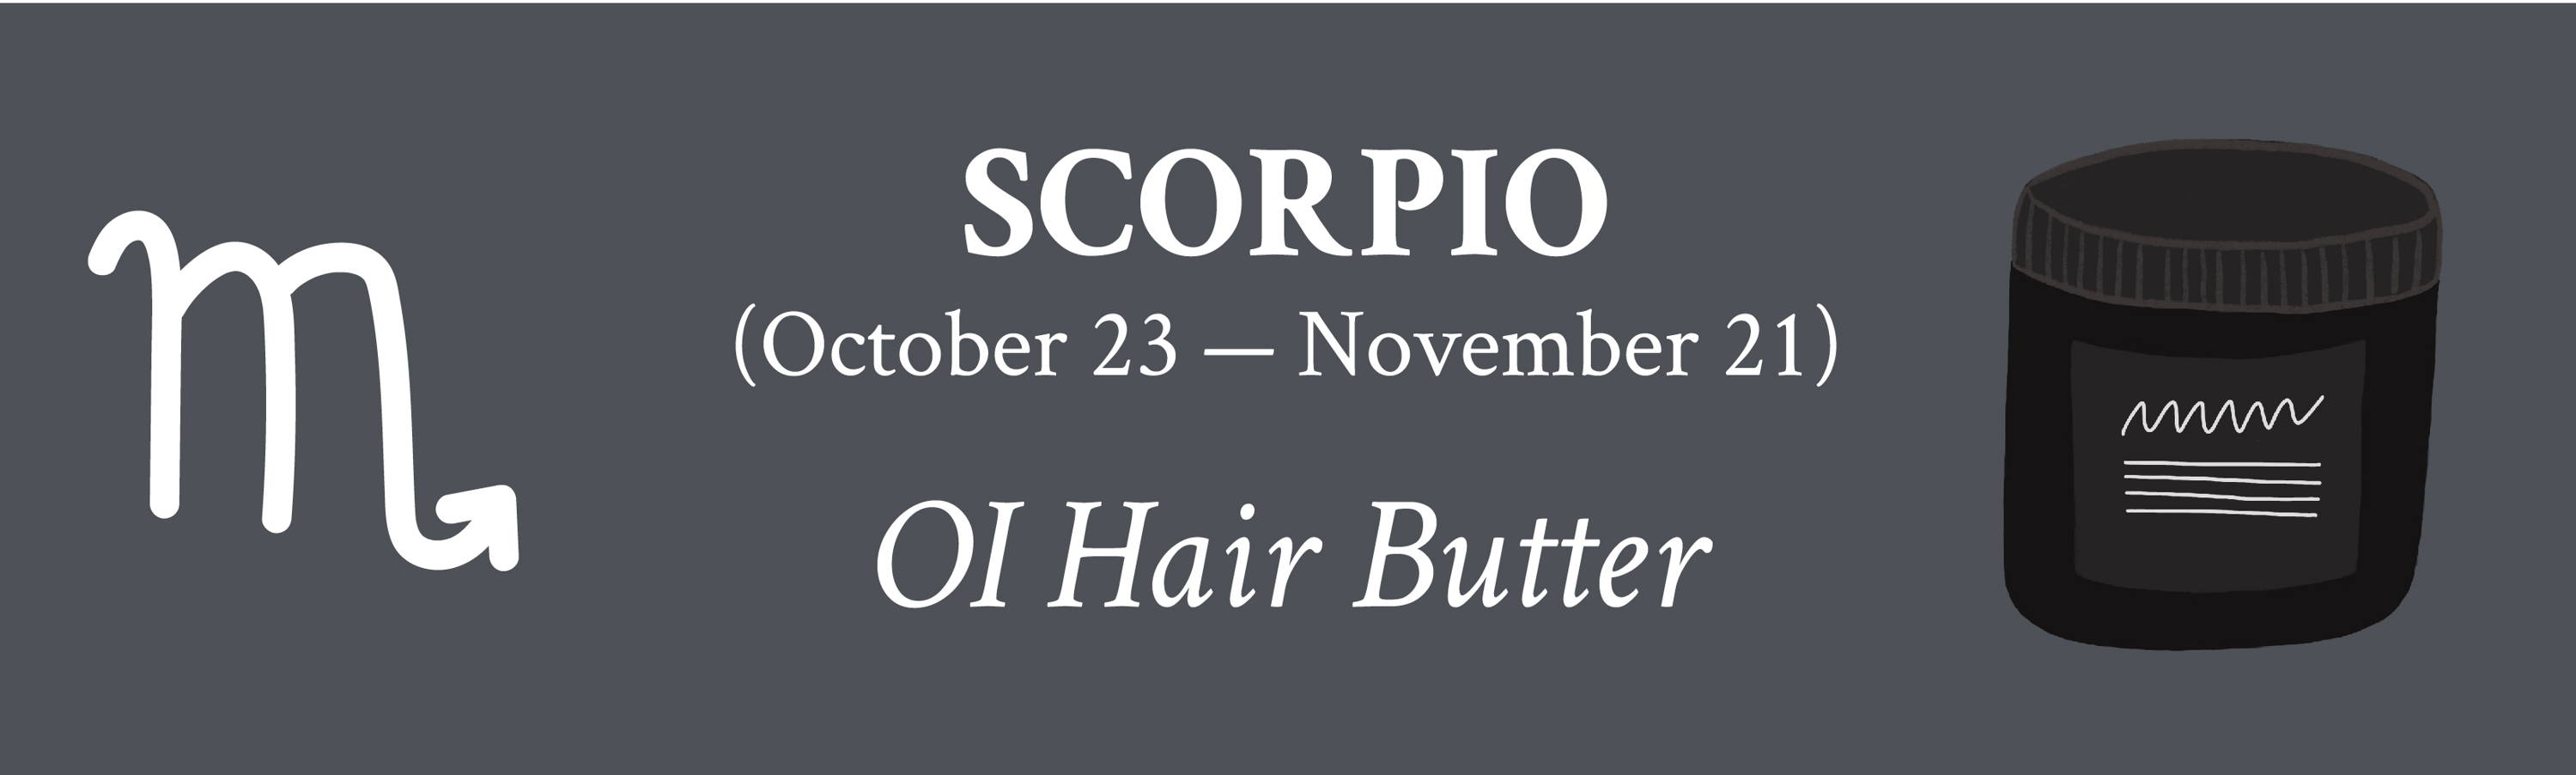 For Scorpio Davines OI Hair Butter